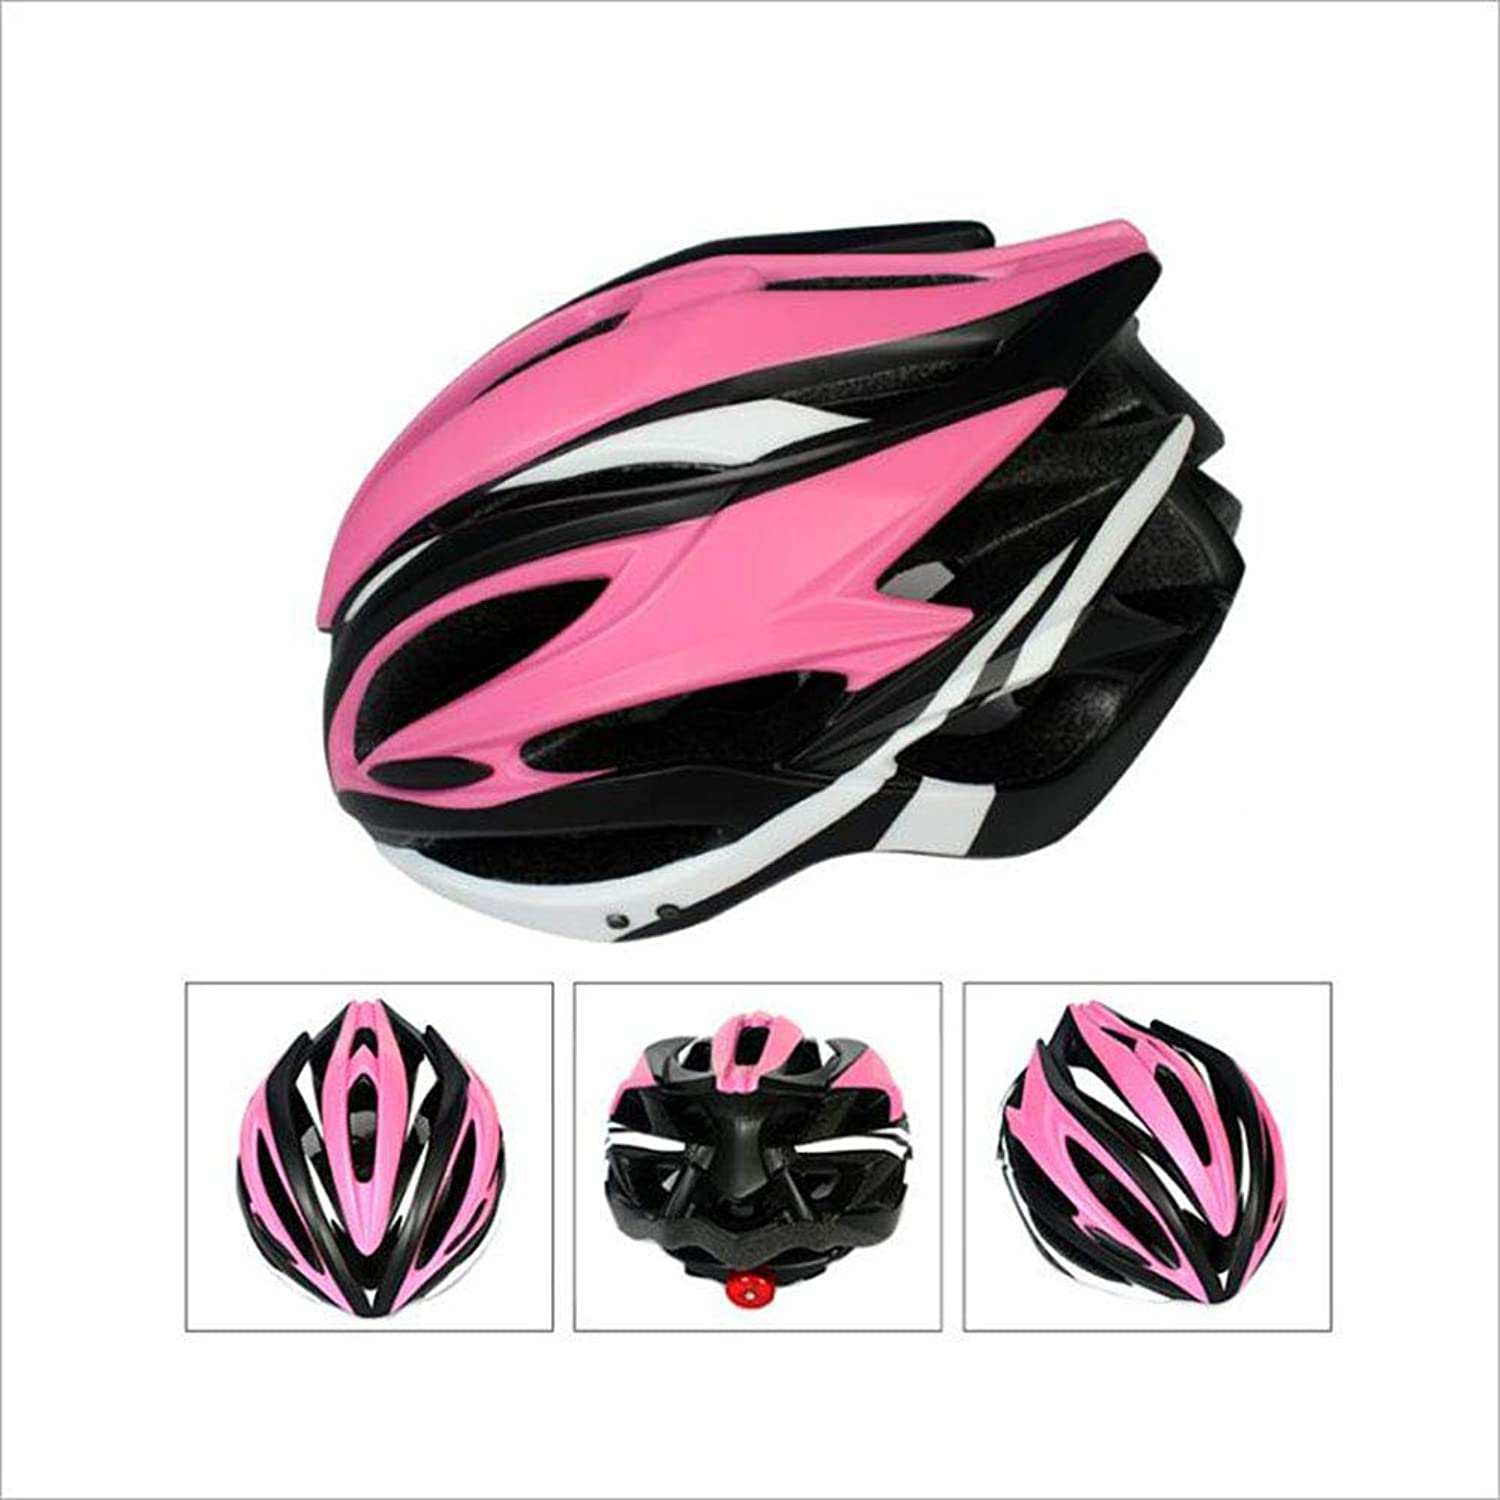 Outdoor Riding Helmet, Bicycle One Riding with Light Helmet Speed Skating Helmet Skating Helmet Predection Helmet